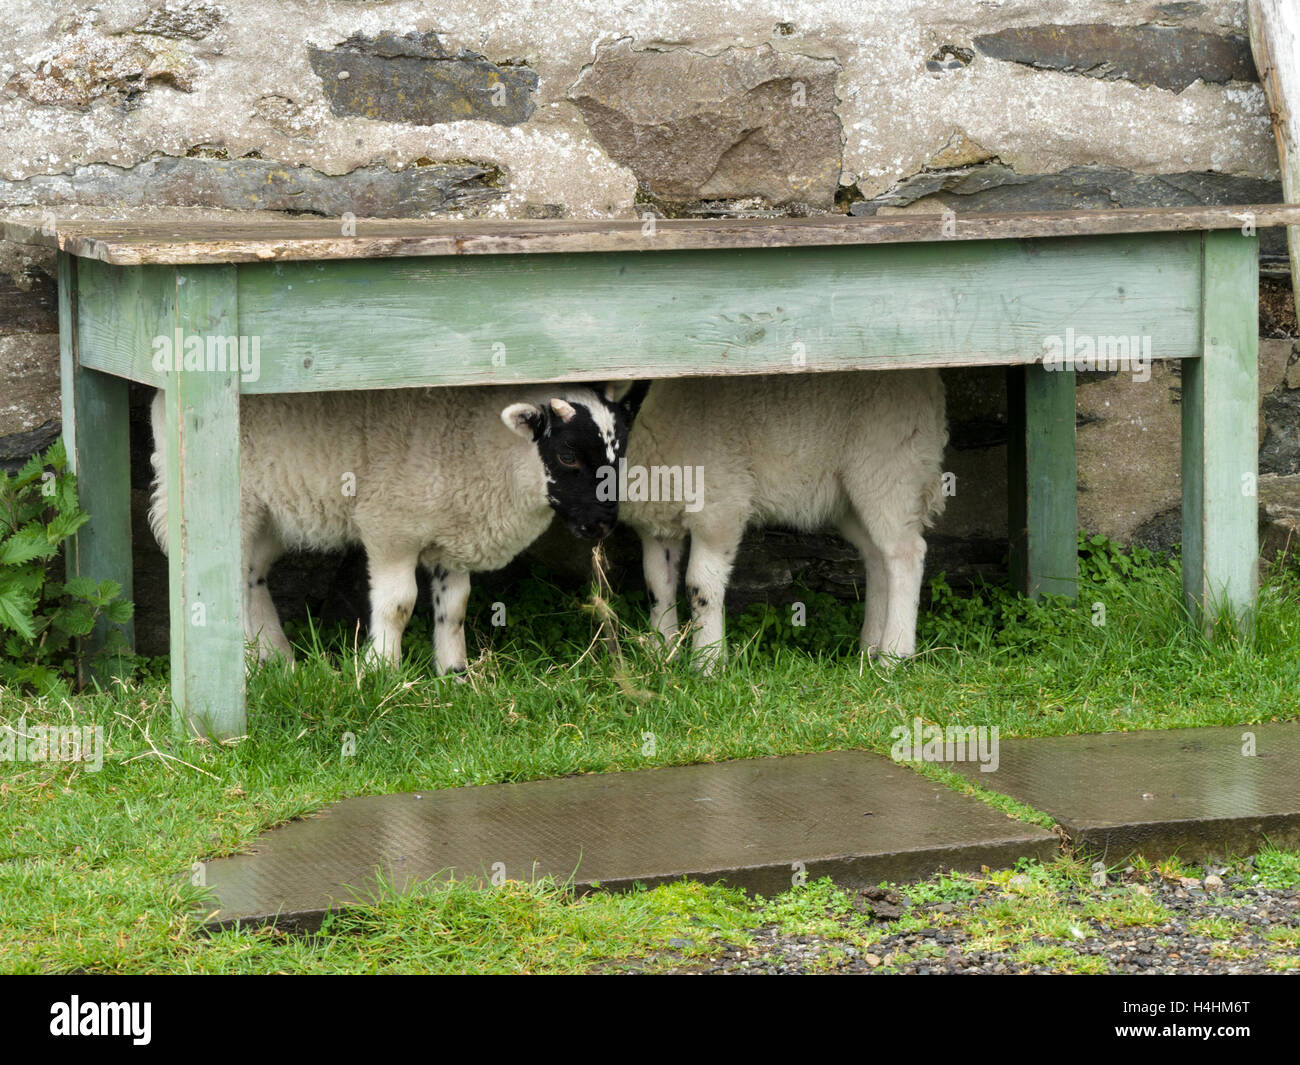 Two lambs sheltering from rain in the dry under and old wooden table, Isle of Colonsay, Scotland, UK. - Stock Image